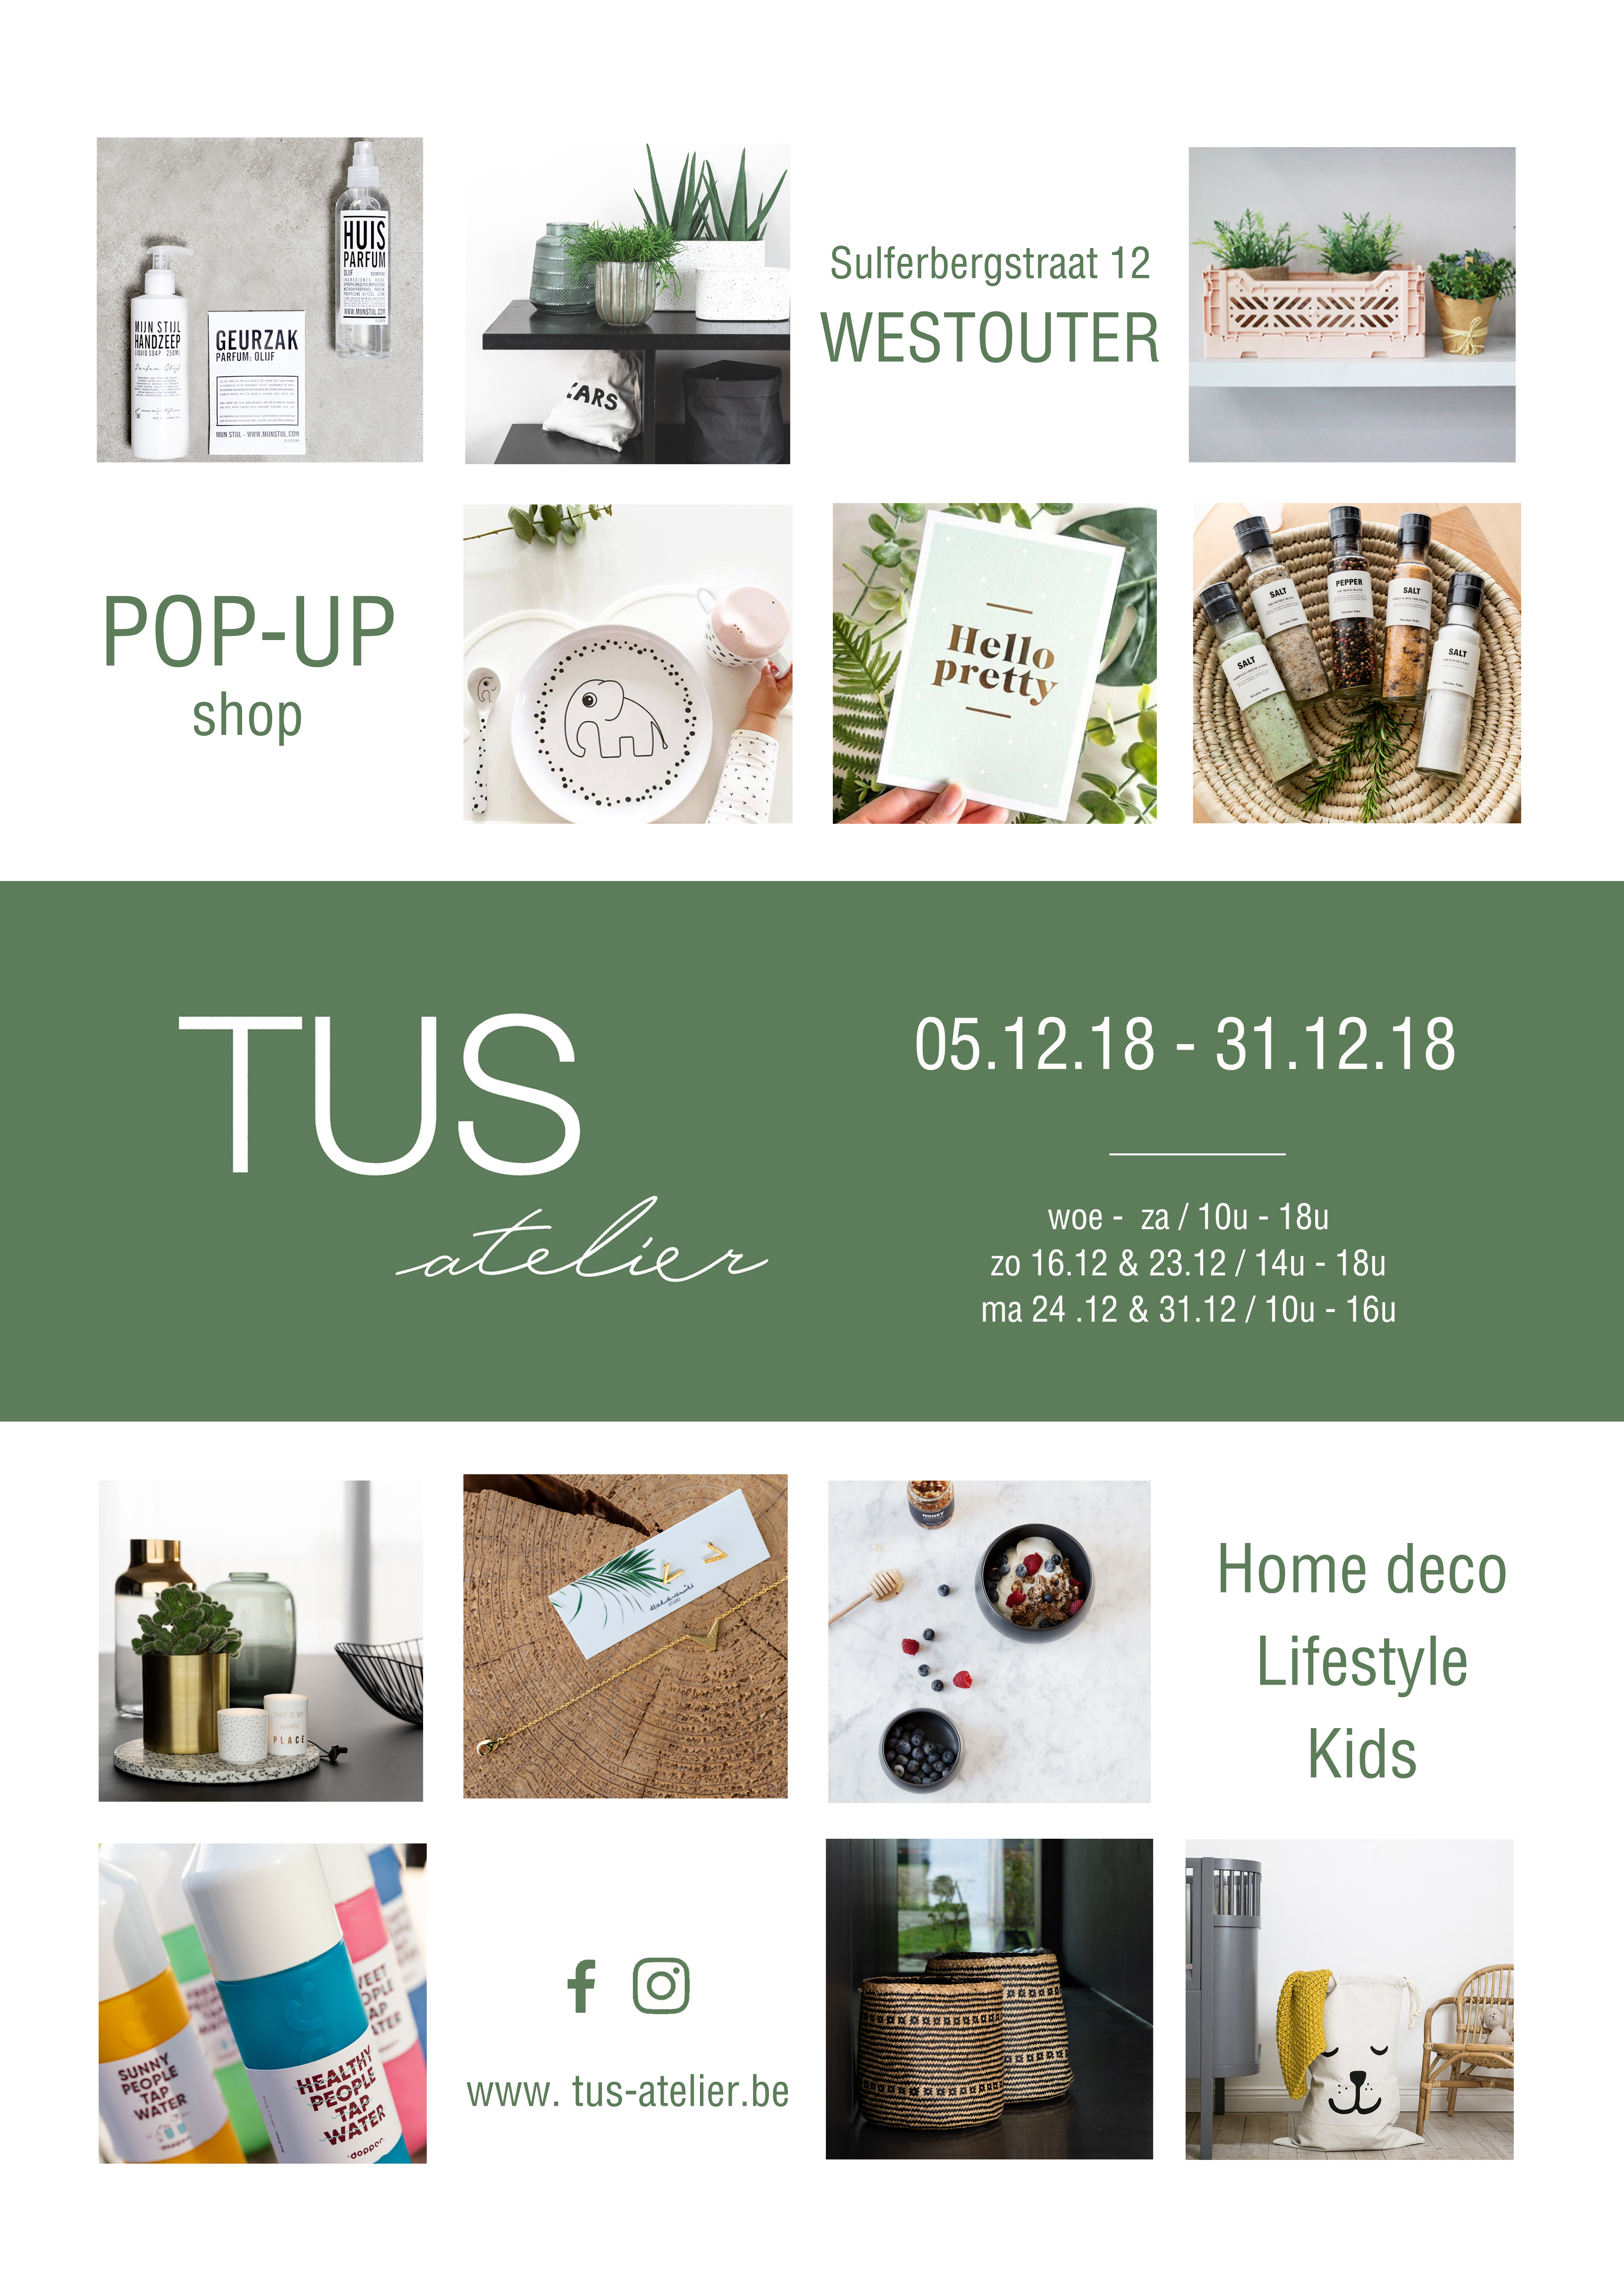 TUS atelier pop-up te Westouter